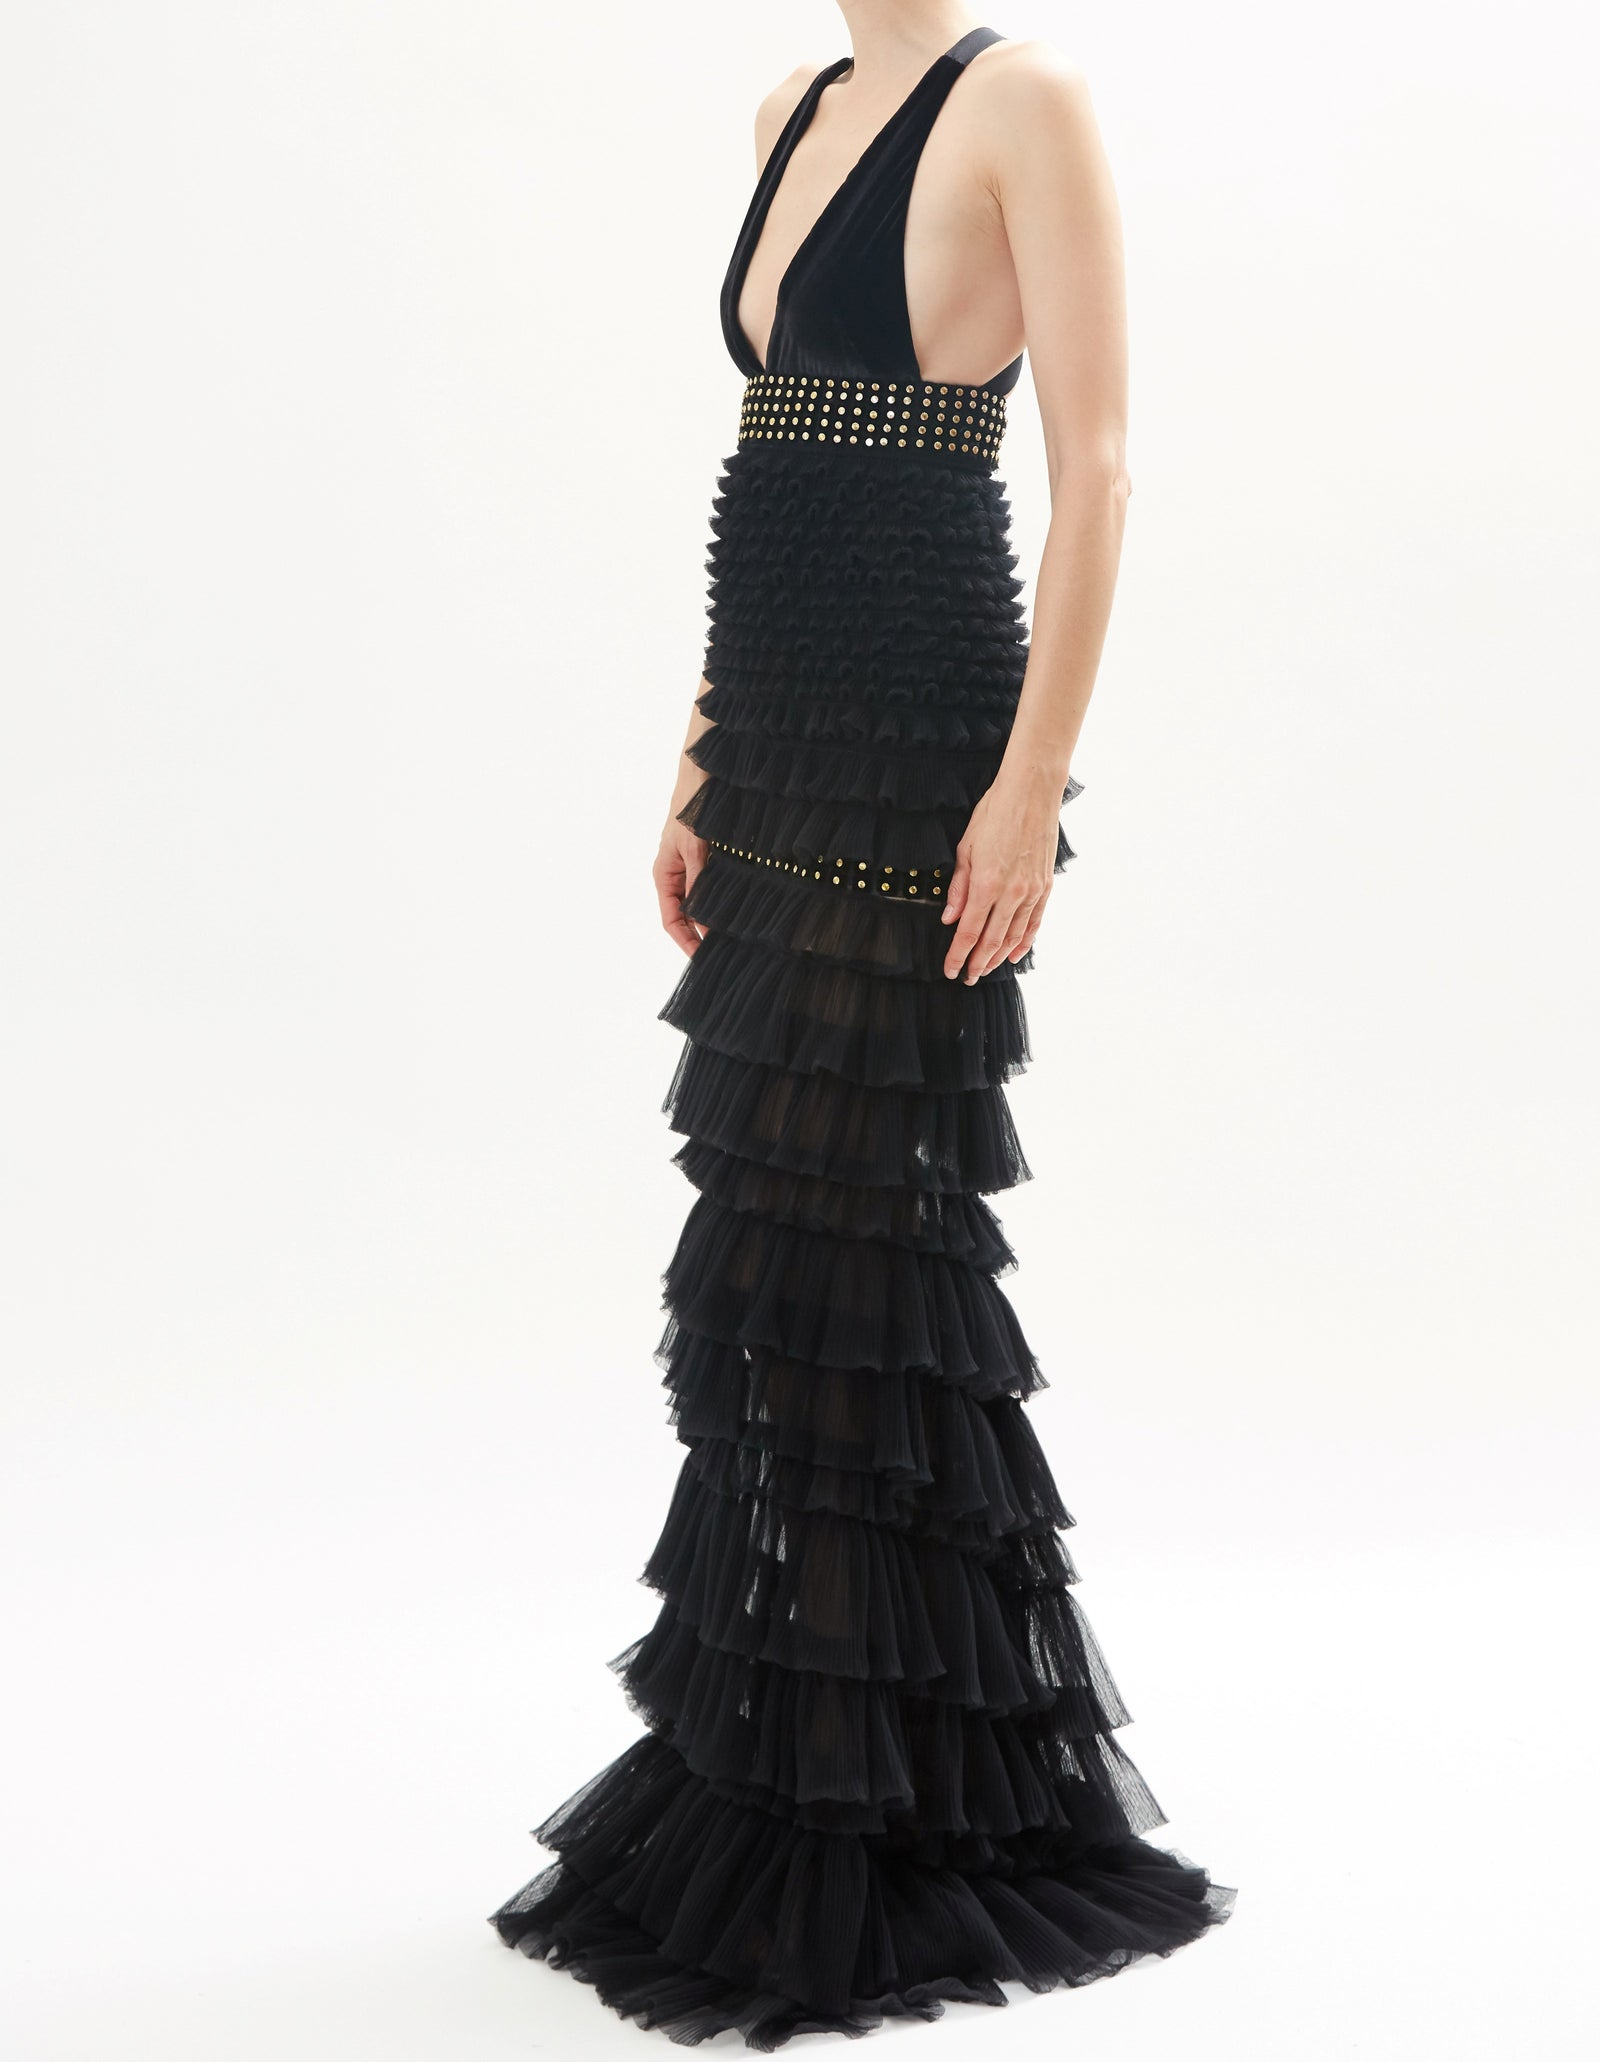 Black Tiered Tulle Gown With Criss Cross Back And Embroidered Detail